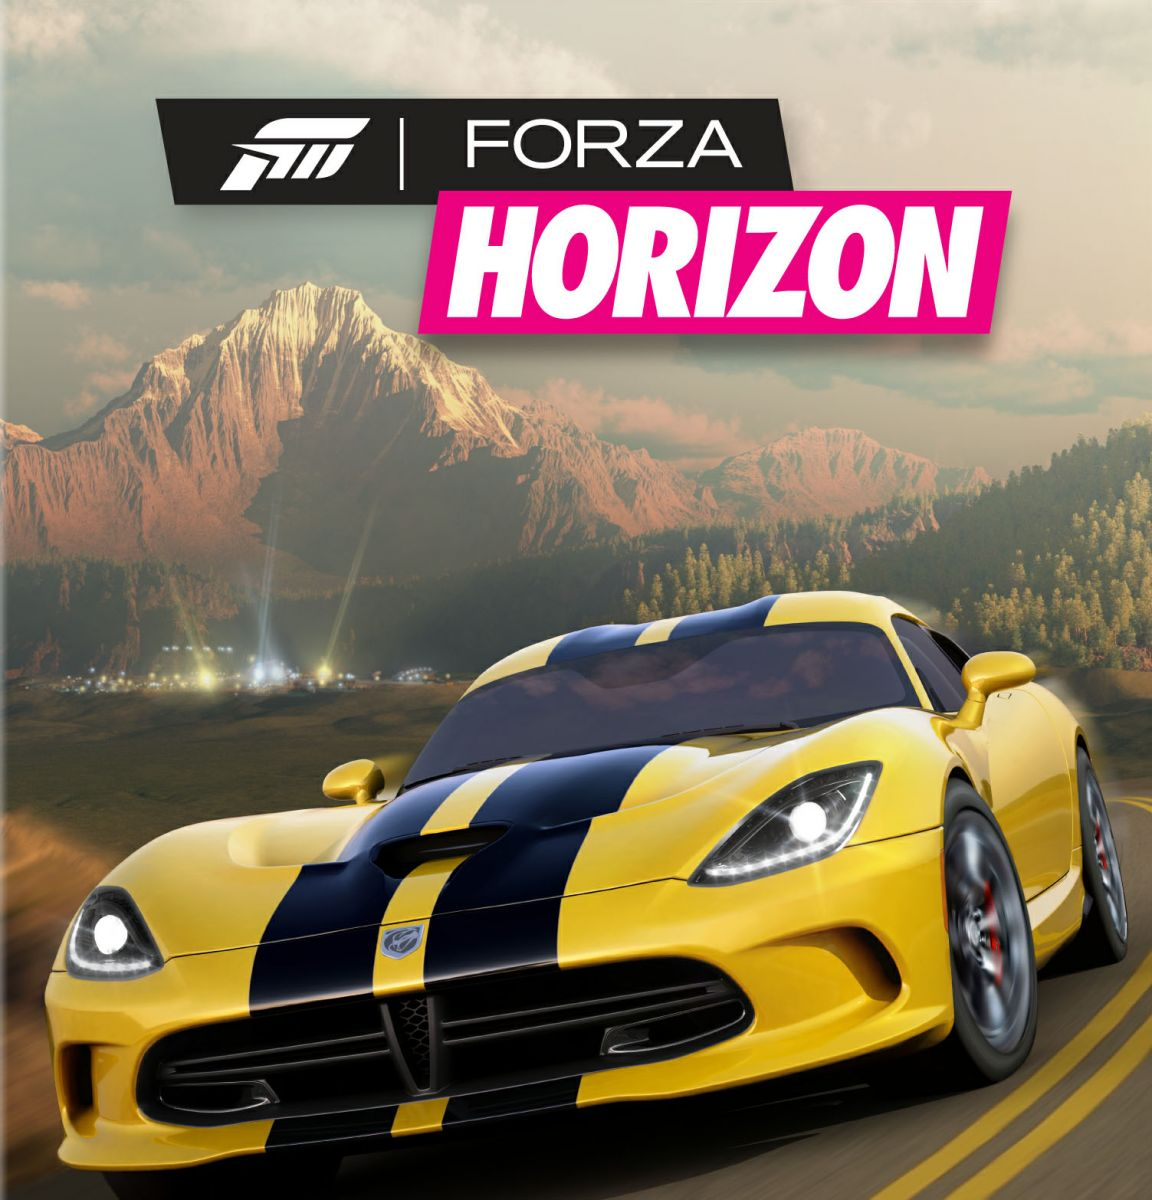 review forza horizon xbox 360. Black Bedroom Furniture Sets. Home Design Ideas